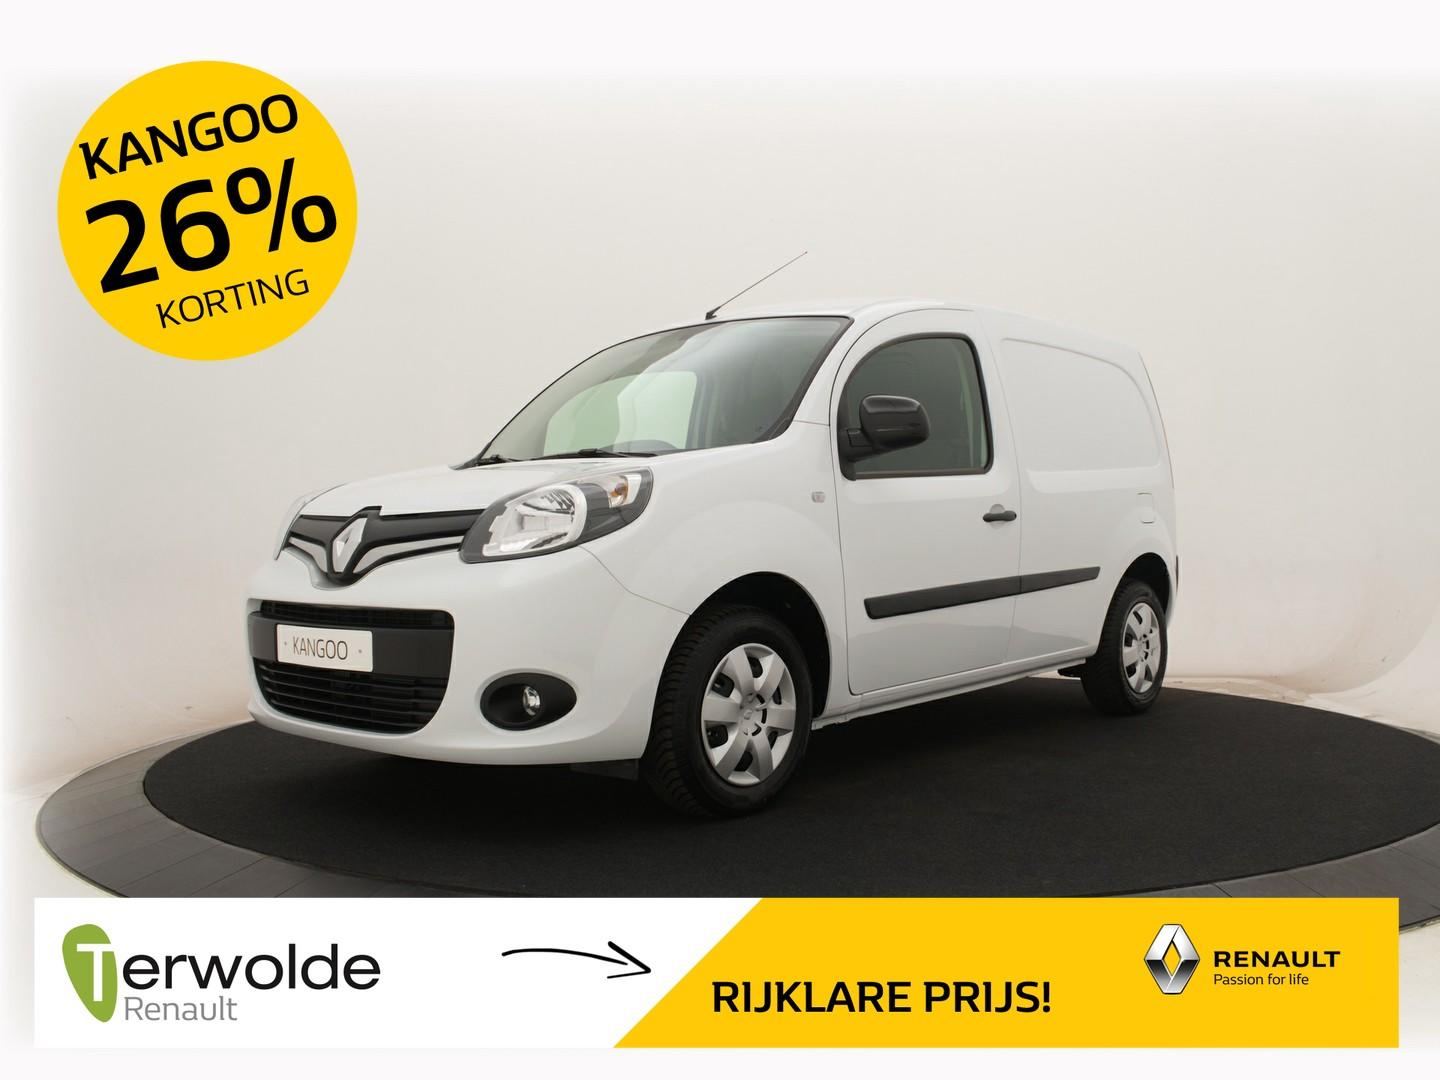 Renault Kangoo 1.5 dci 90 energy work edition nu 26% korting!!!